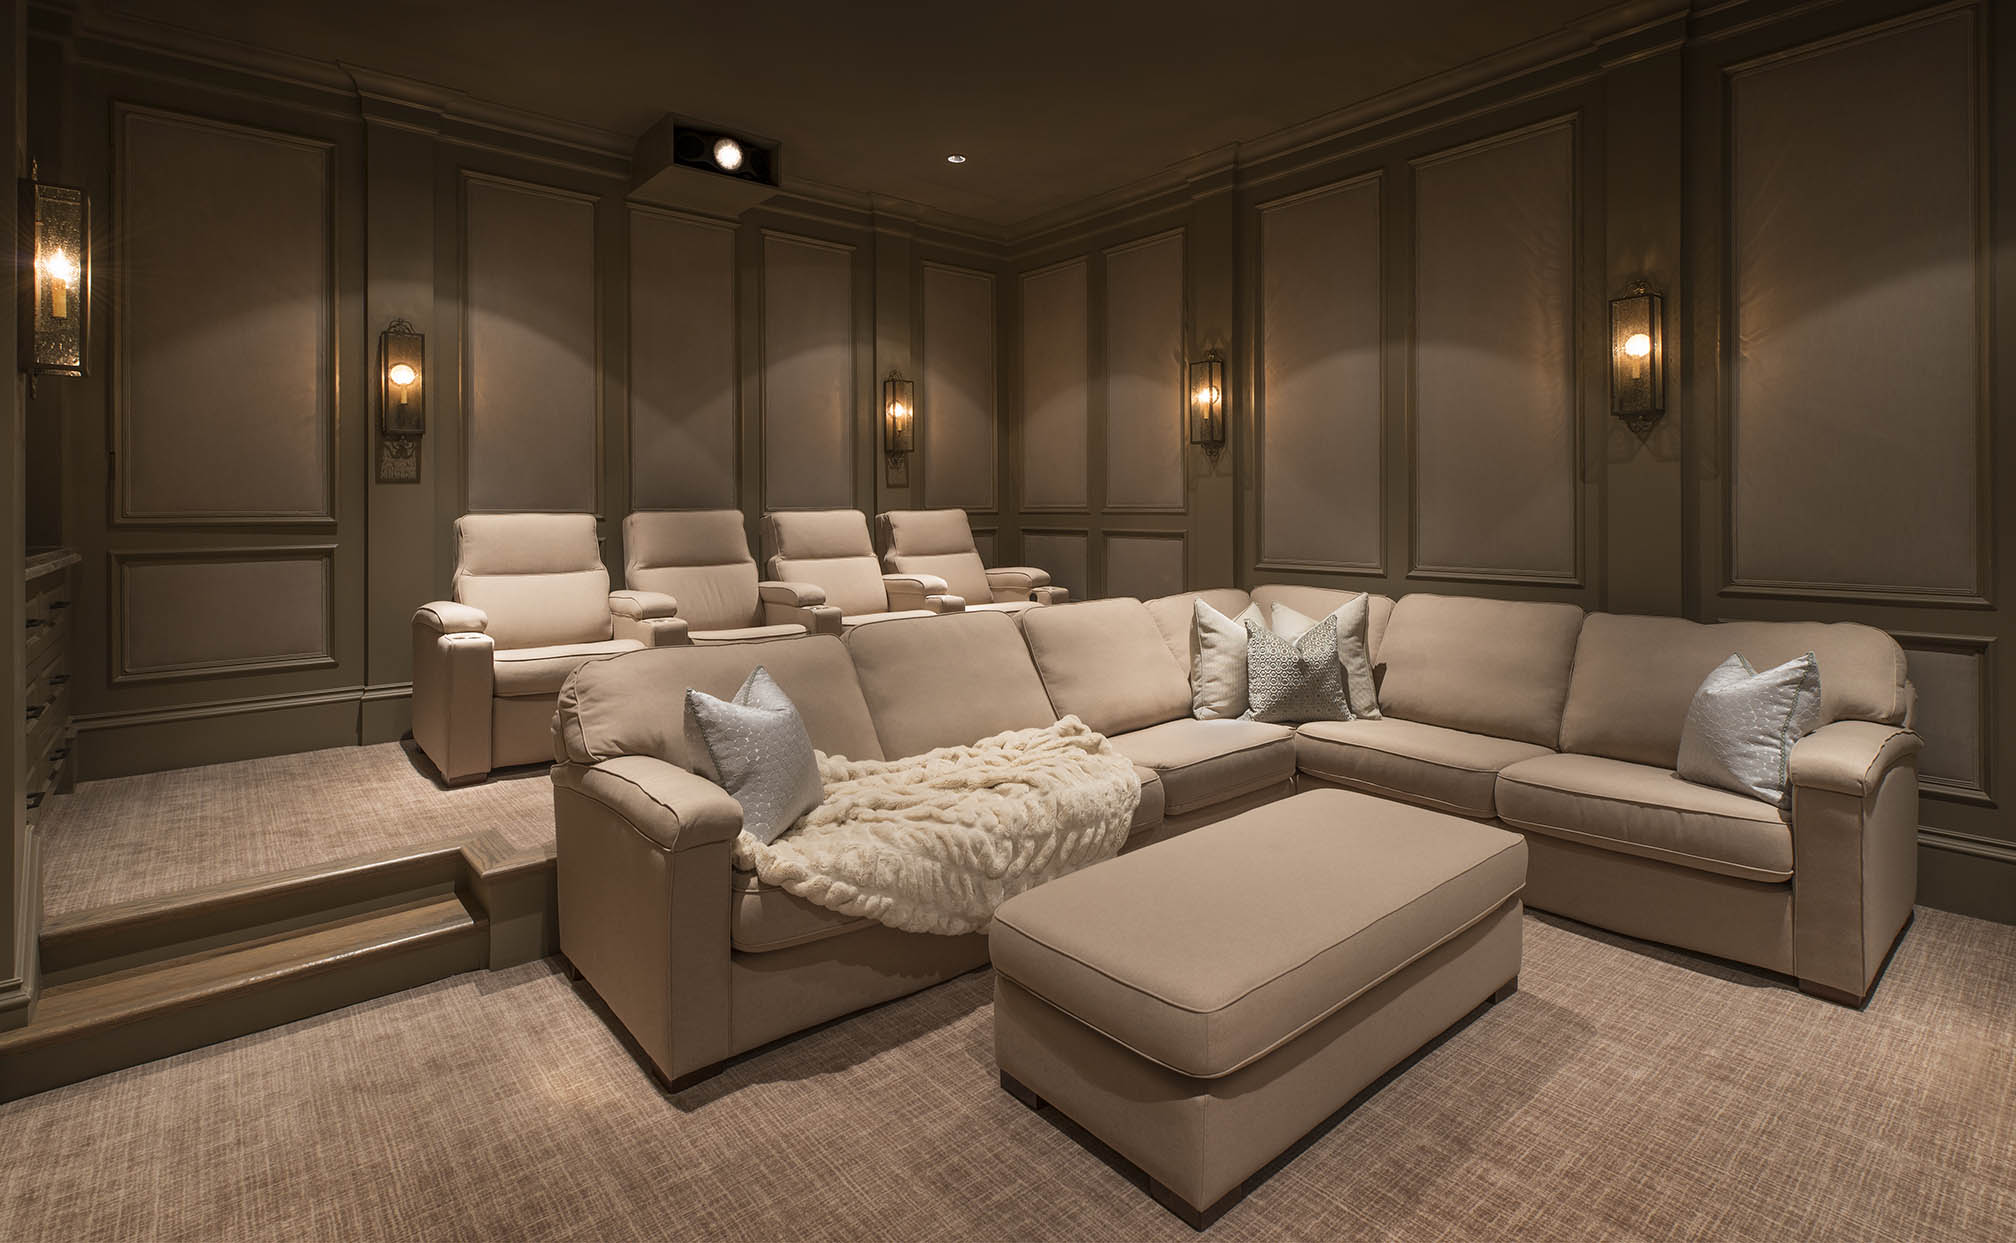 A custom home theater private cinema in Flower Mound Texas with fabric walls, sectionals and warm colors. 4K Projector, Screen Innovations Screen.